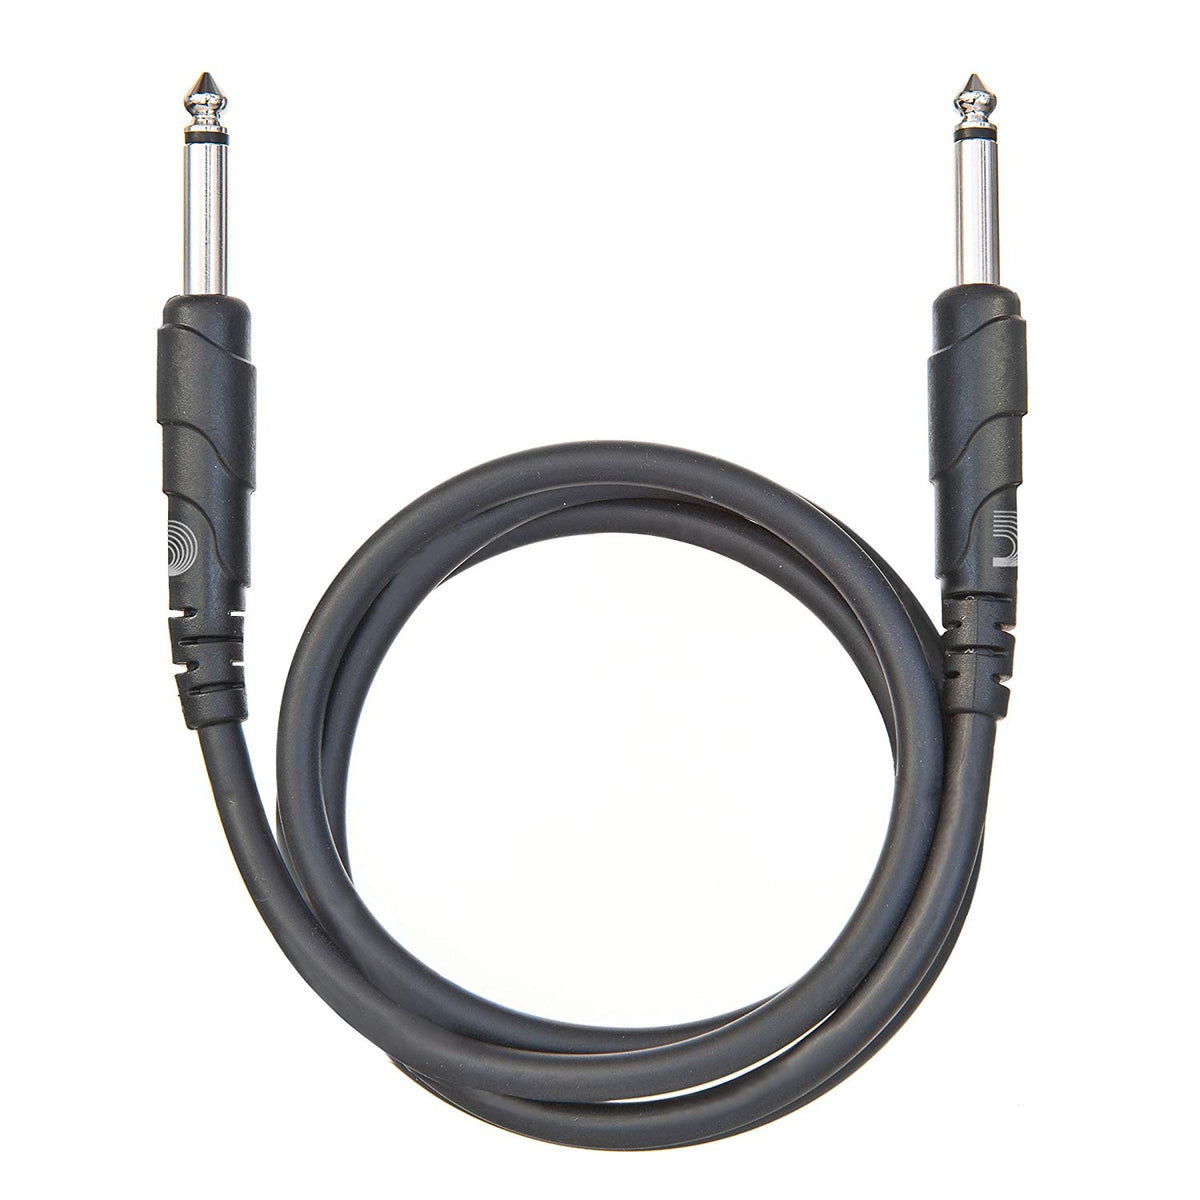 D'Addario Planet Waves Instrument Cable - 1ft